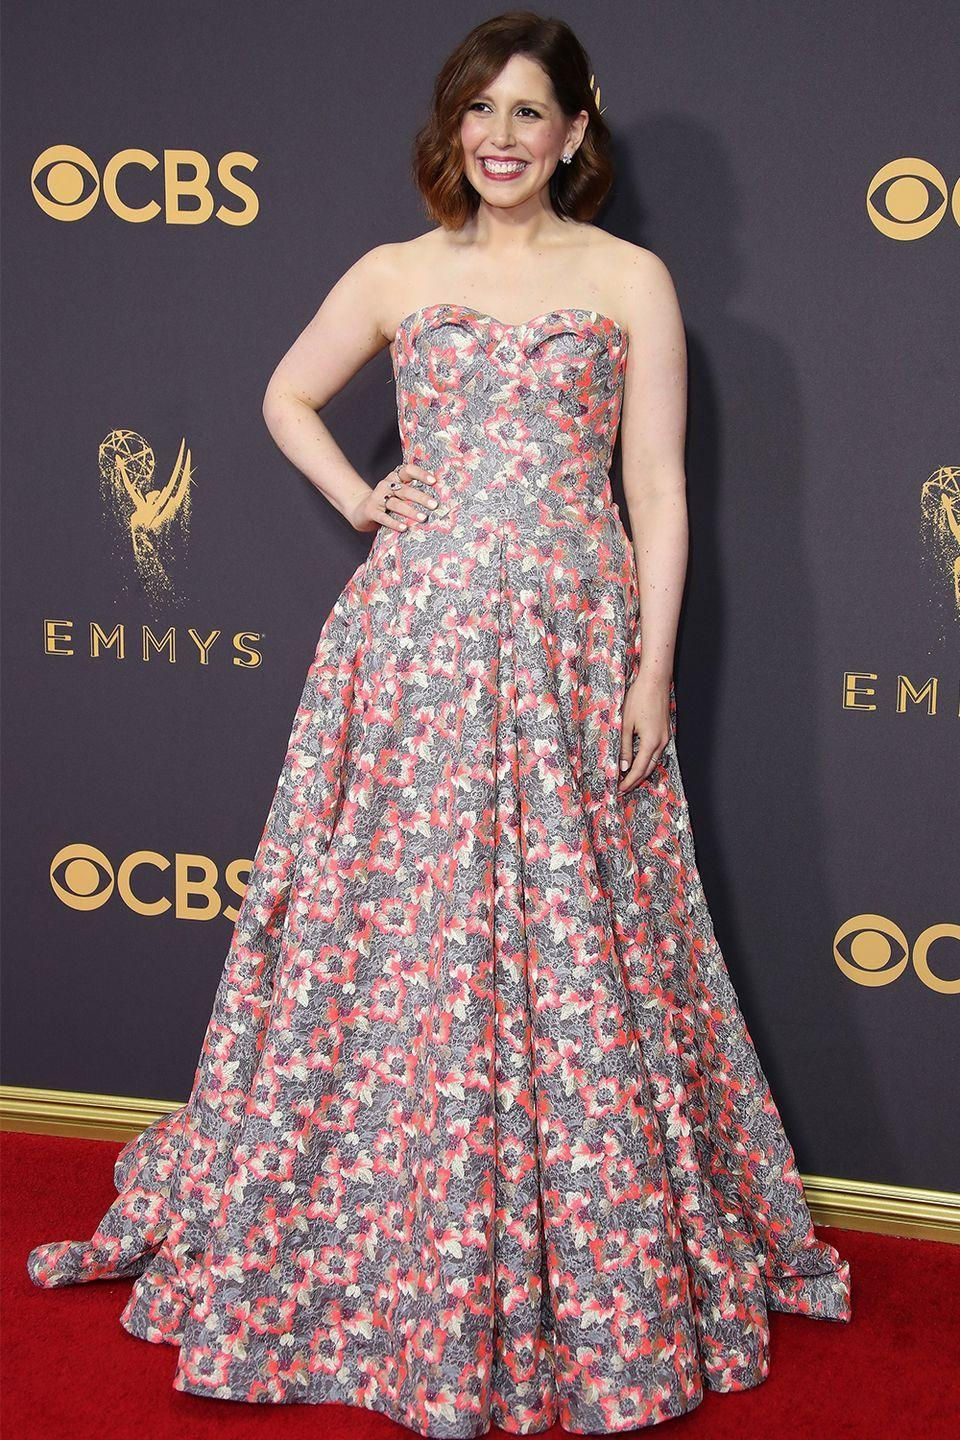 <p>Full-on gown-wearing queen. And probably still happy.</p>